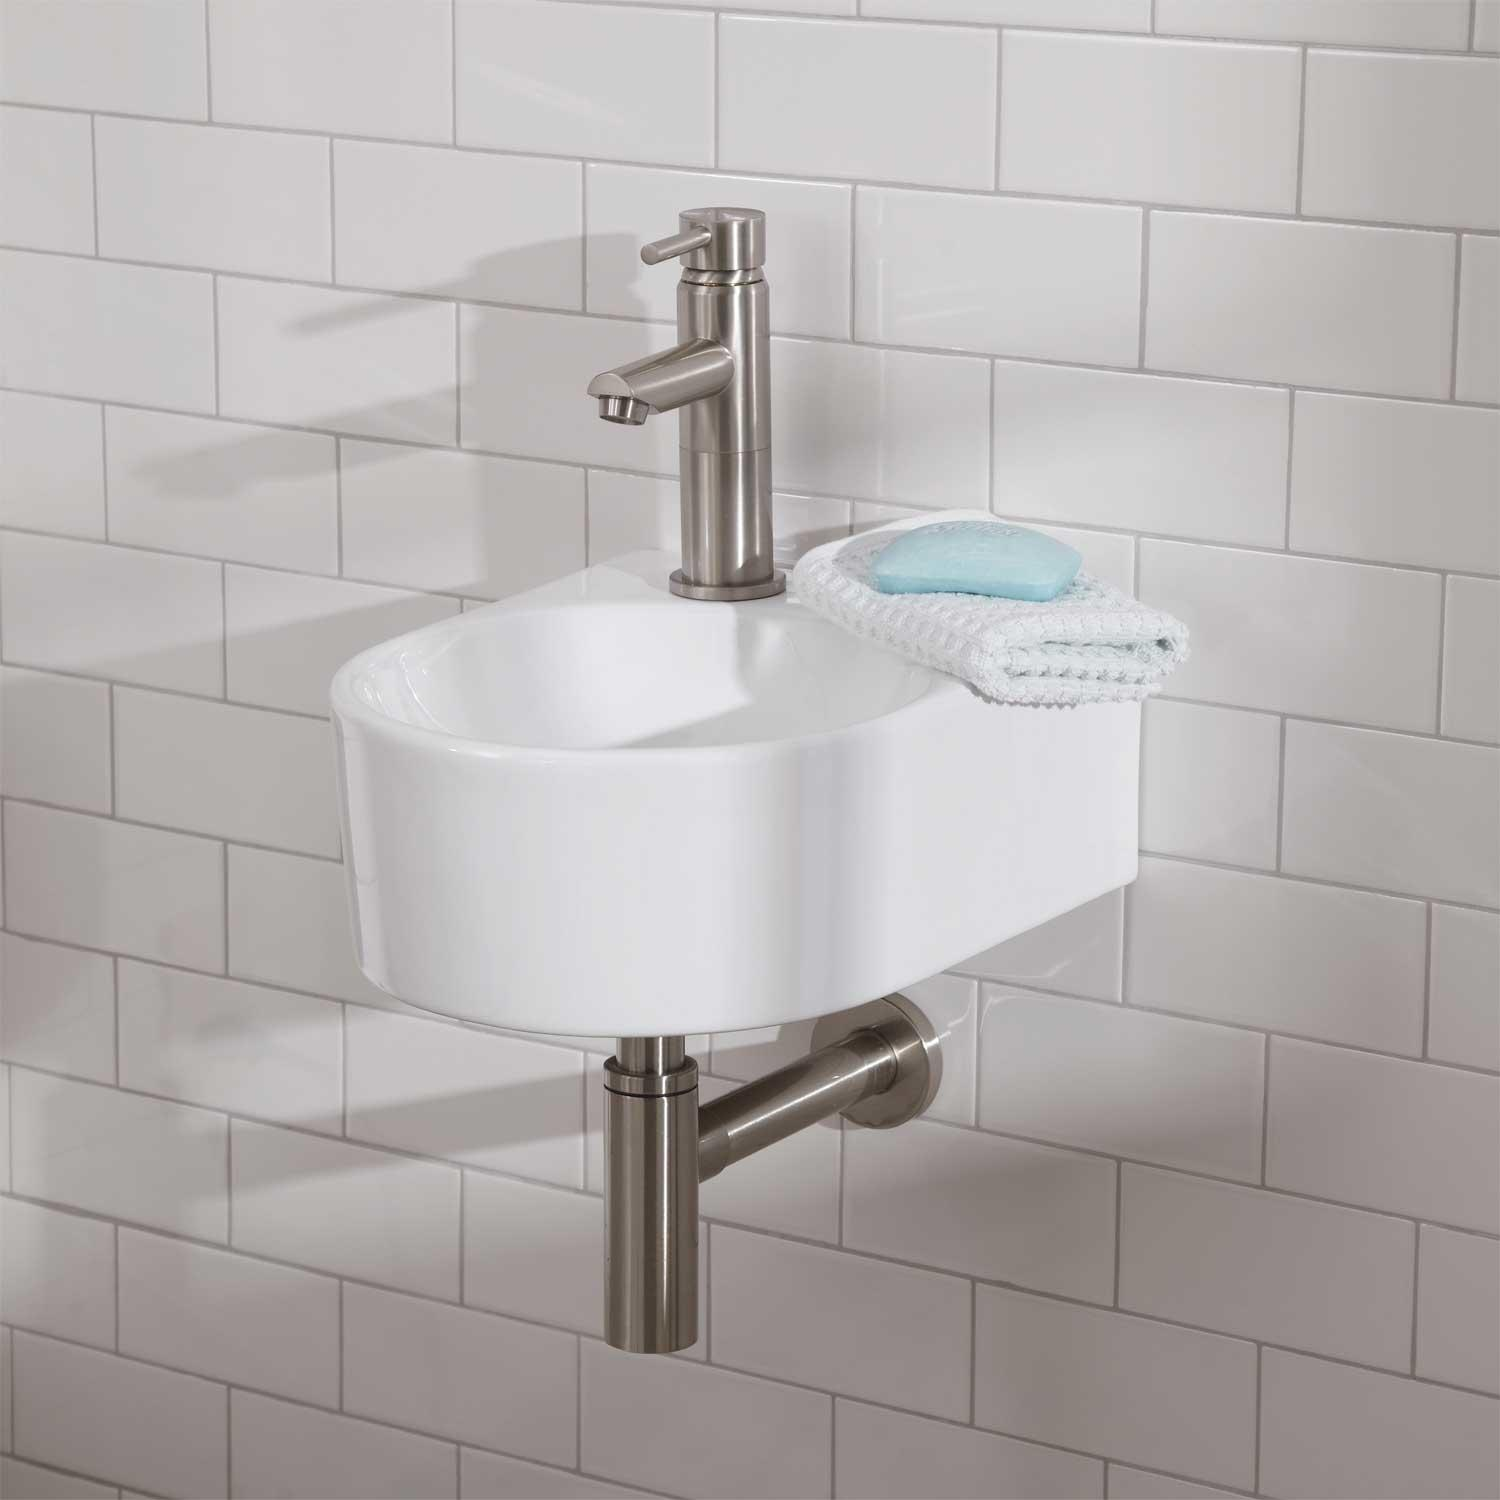 Bon Astonishing Design Of The Wall Mounted Sink With Rounded Little Sink Ideas  With Silver Faucets On